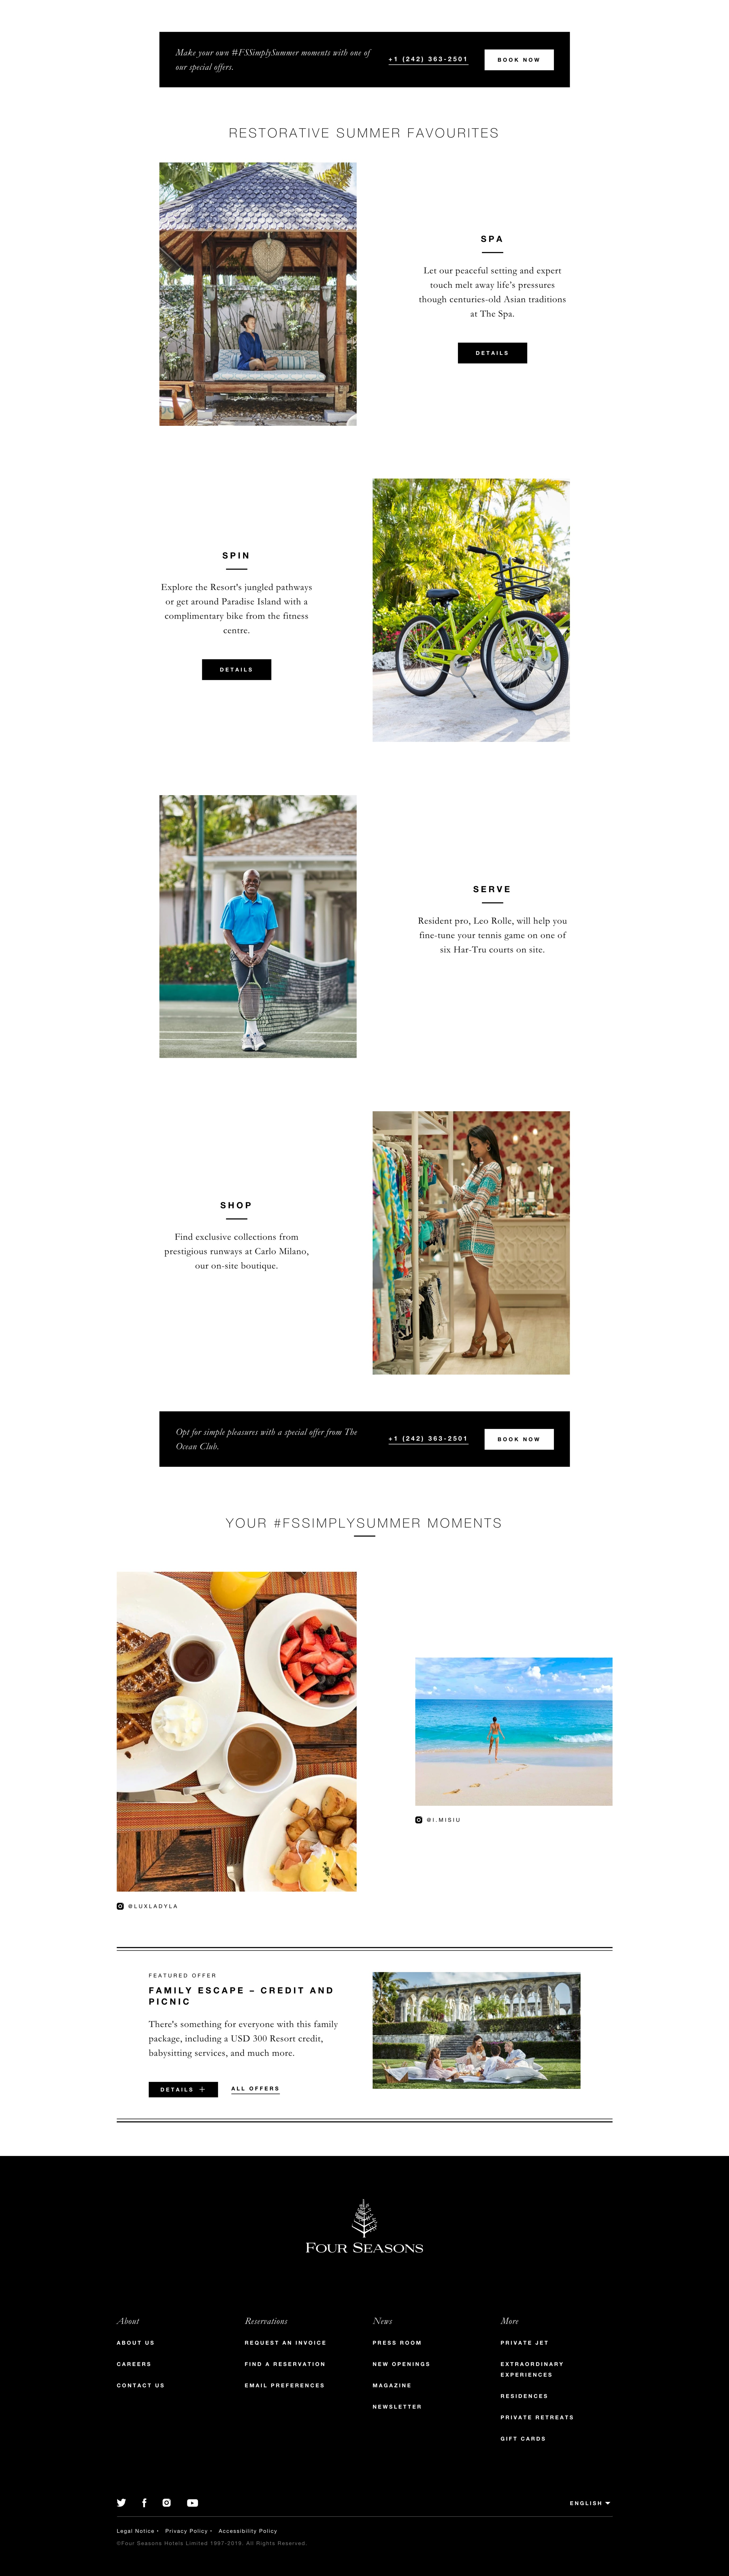 britt-valentine-fourseasons-oceanclub-landing-pages-property-simply-summer-2019-2.png